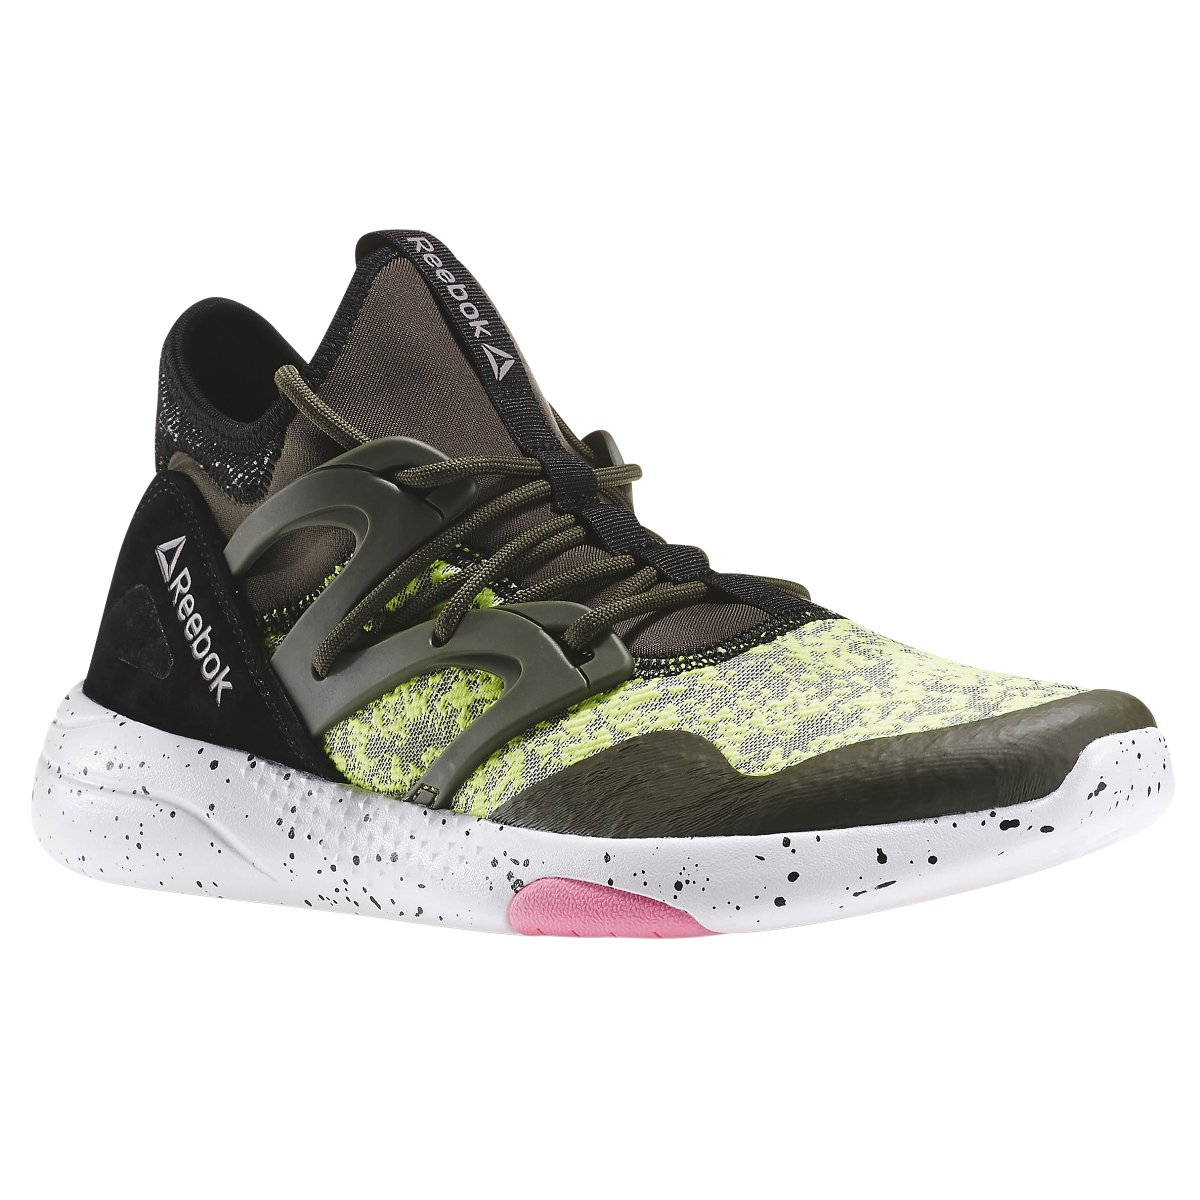 Reebok Women's Hayasu Training Shoe B019P5U73A 5 B(M) US|Poplar Green/Yellow/Black/Pink/Moondust/White